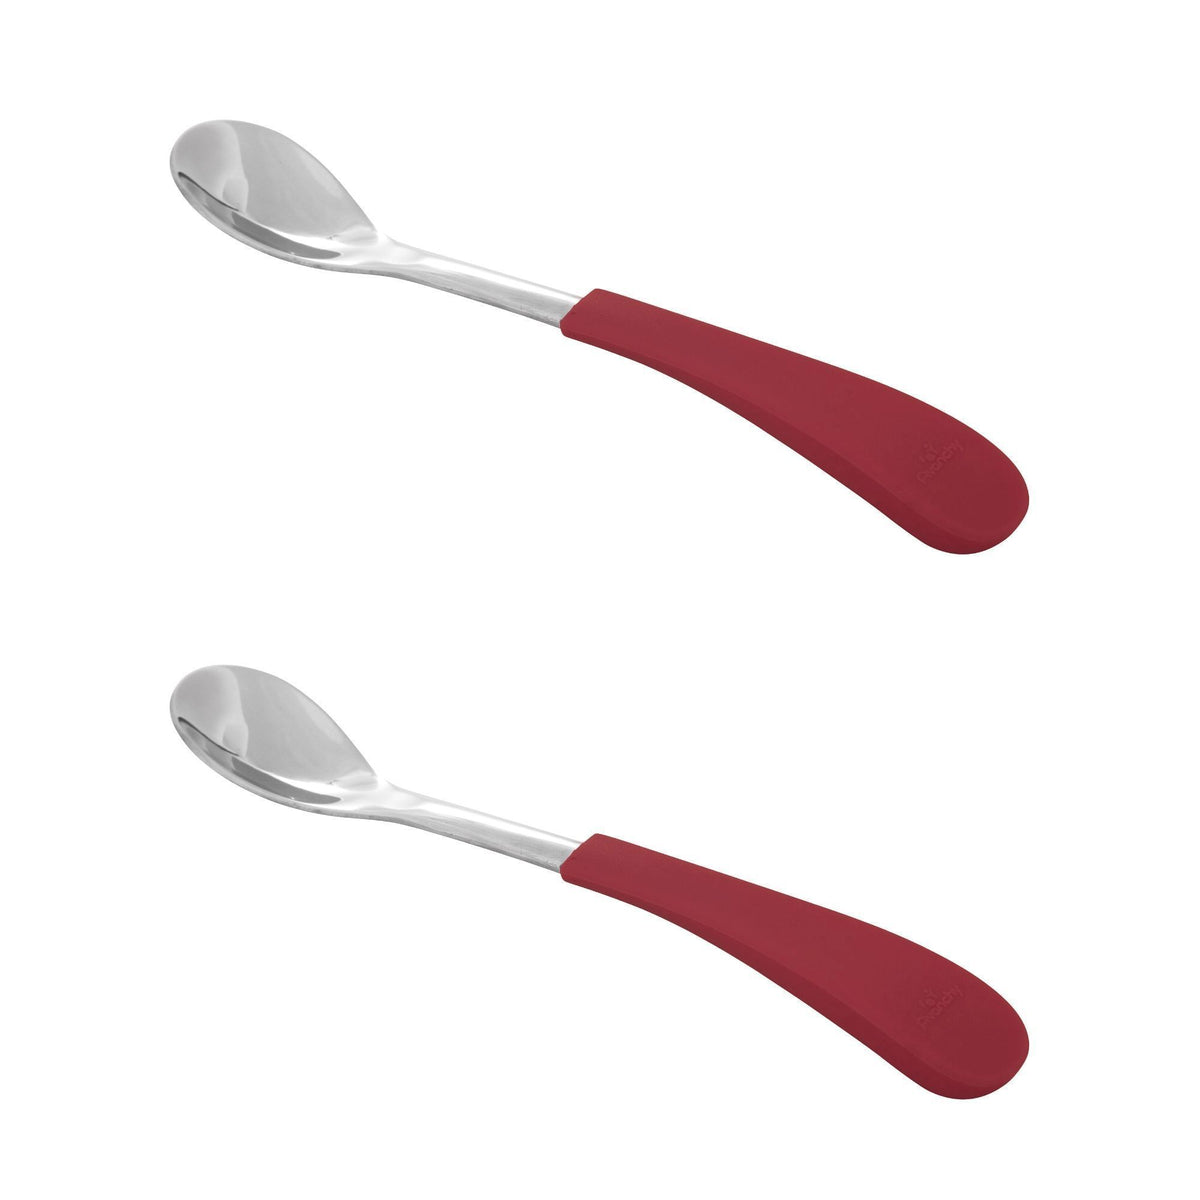 Stainless Steel Infant Spoon | 2 pack